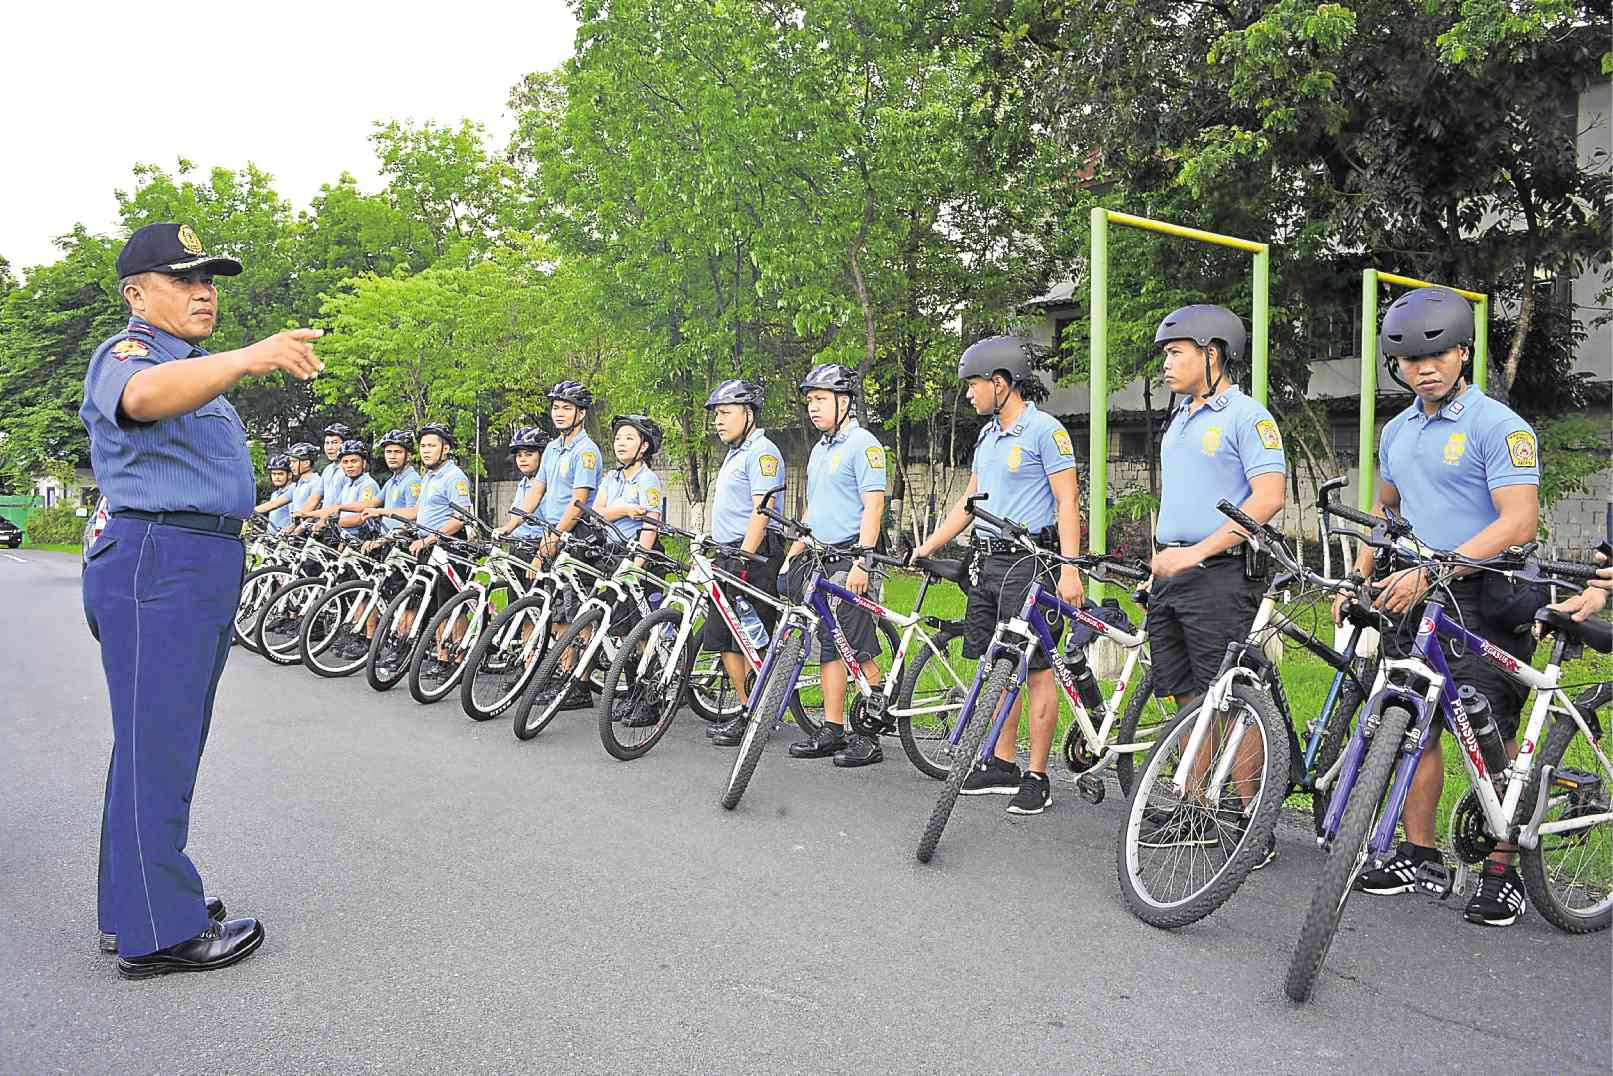 QC bike patrol guards vs crime while promoting earth-friendly transport